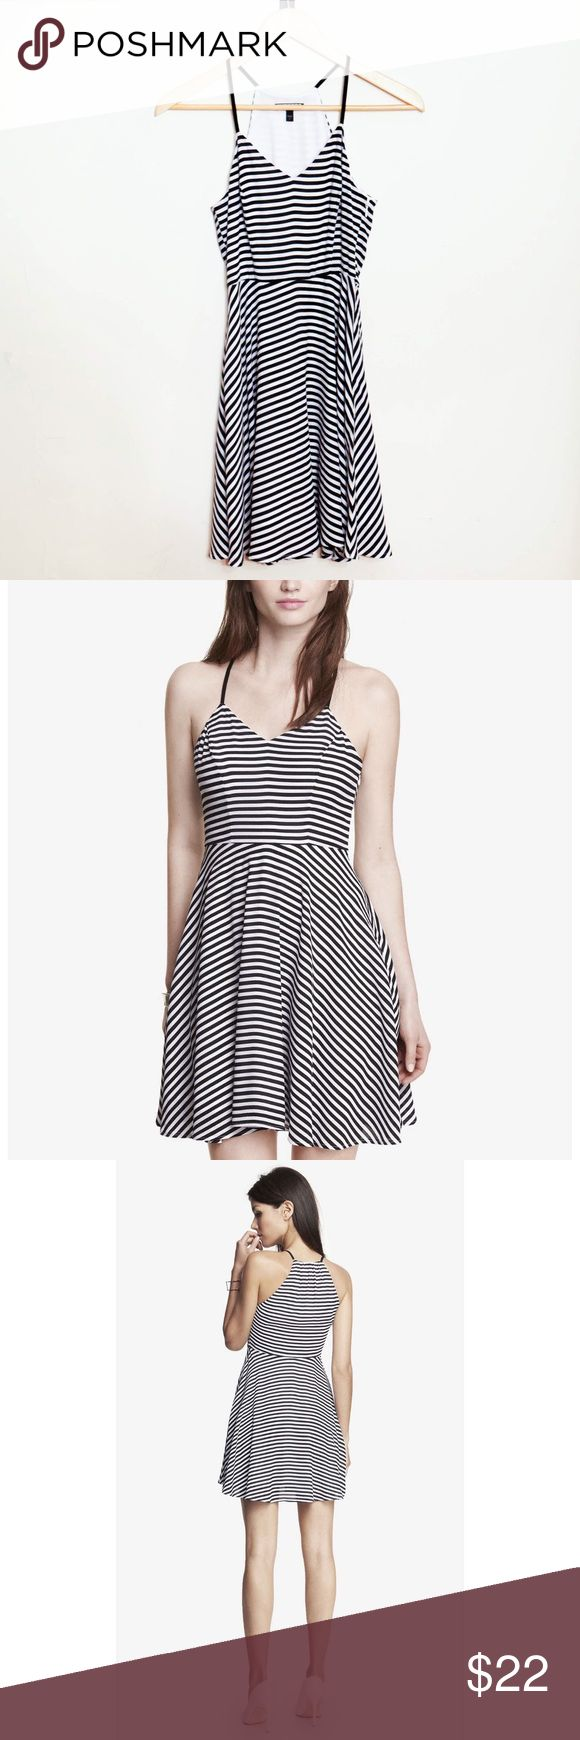 💓NEW LISTING💓 Express Striped Halter Slip Dress This gorgeous little dress is very flattering and comfortable. Great for any occasion--dress it up or down with the right jacket, heels and accessories! In great condition, very gently worn--no stains or tears. Express Dresses Midi